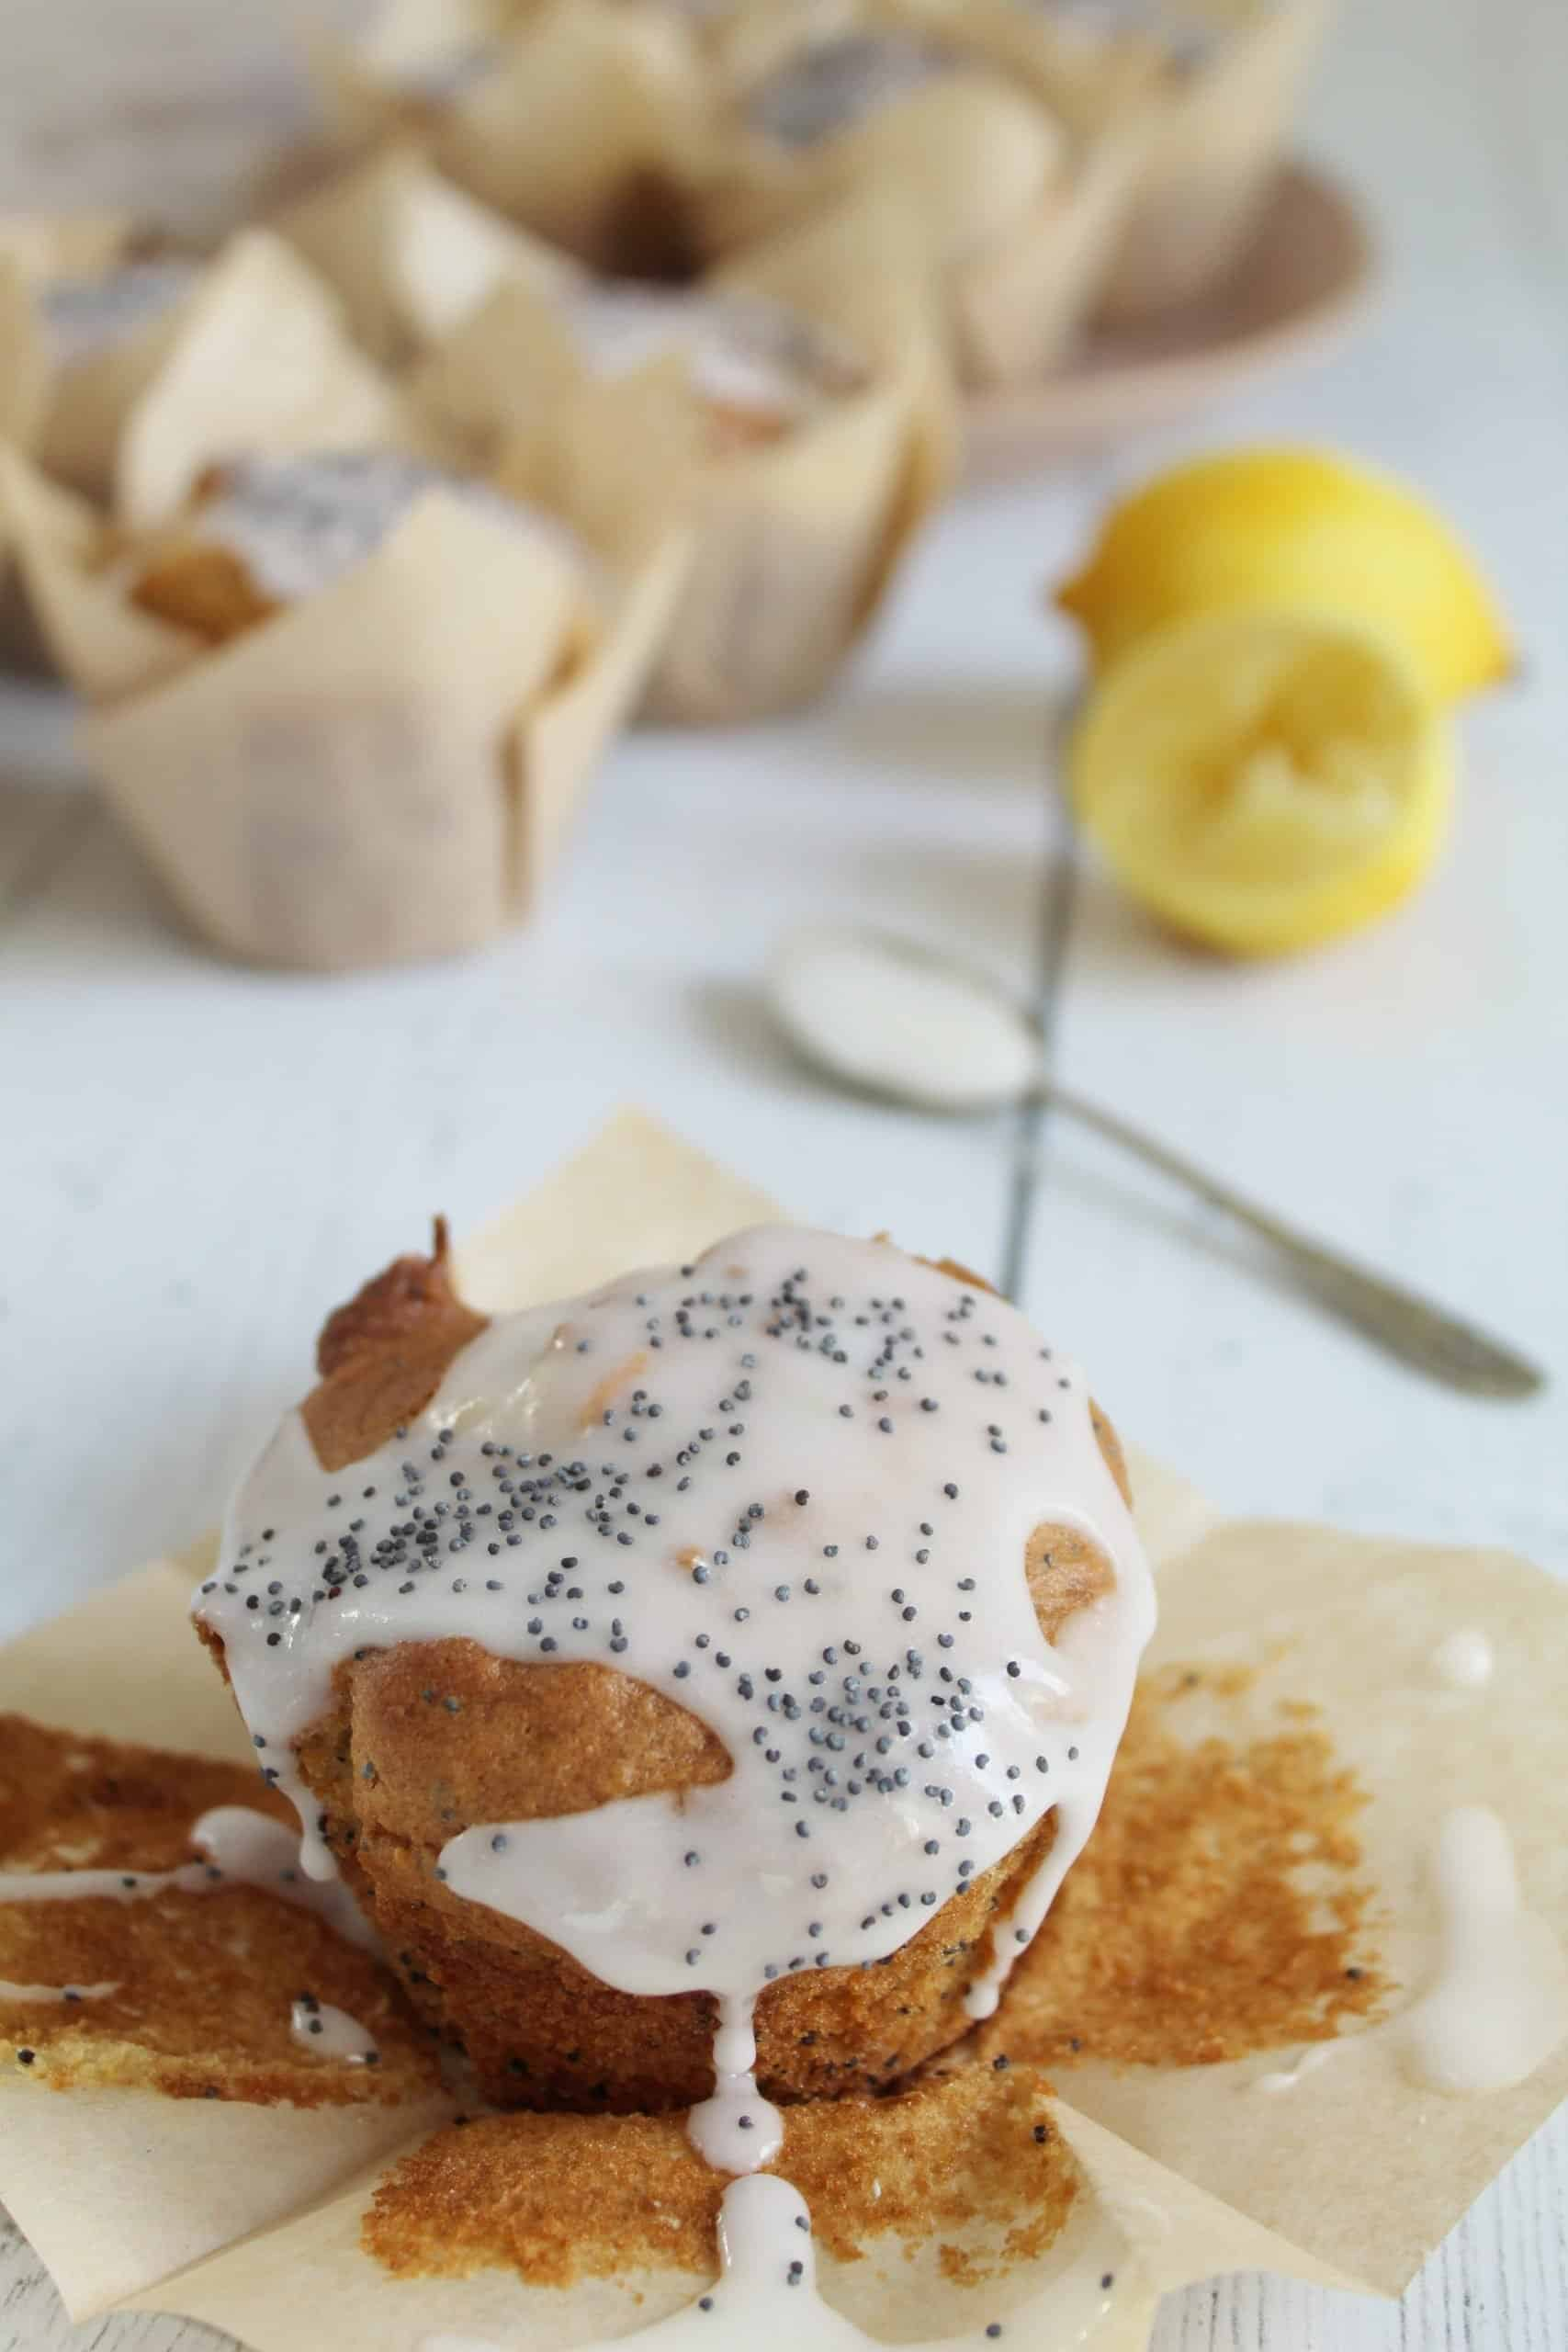 GLUTEN FREE LEMON AND POPPYSEED MUFFINS